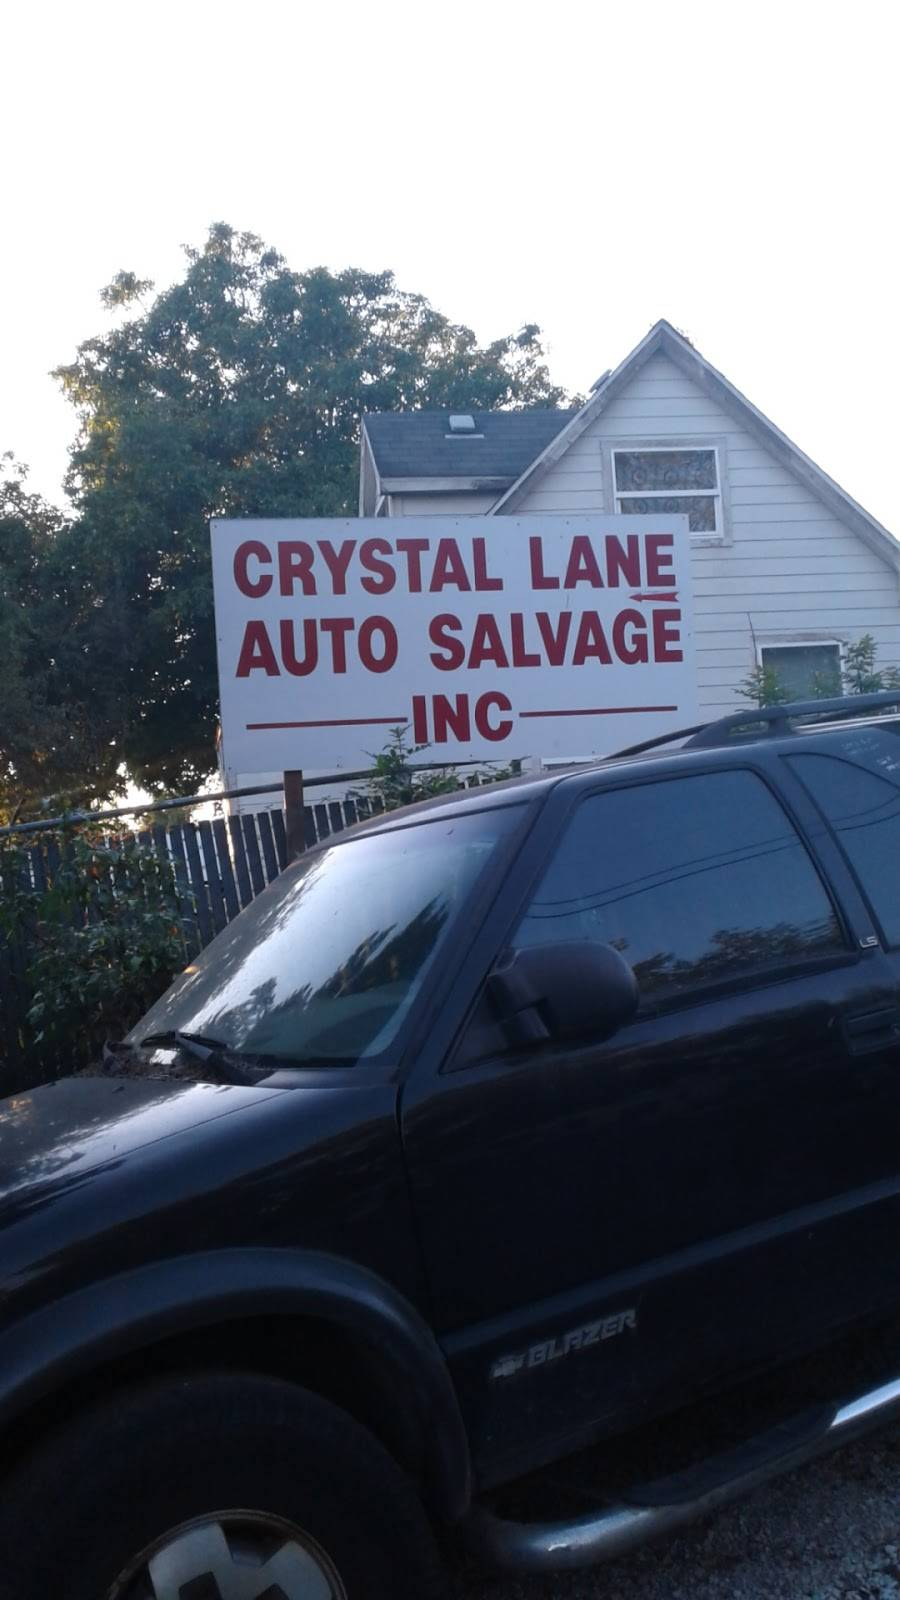 Crystal Lane Auto Salvage Inc - car repair  | Photo 2 of 9 | Address: 4540 NE Crystal Ln, Portland, OR 97218, USA | Phone: (503) 282-3452